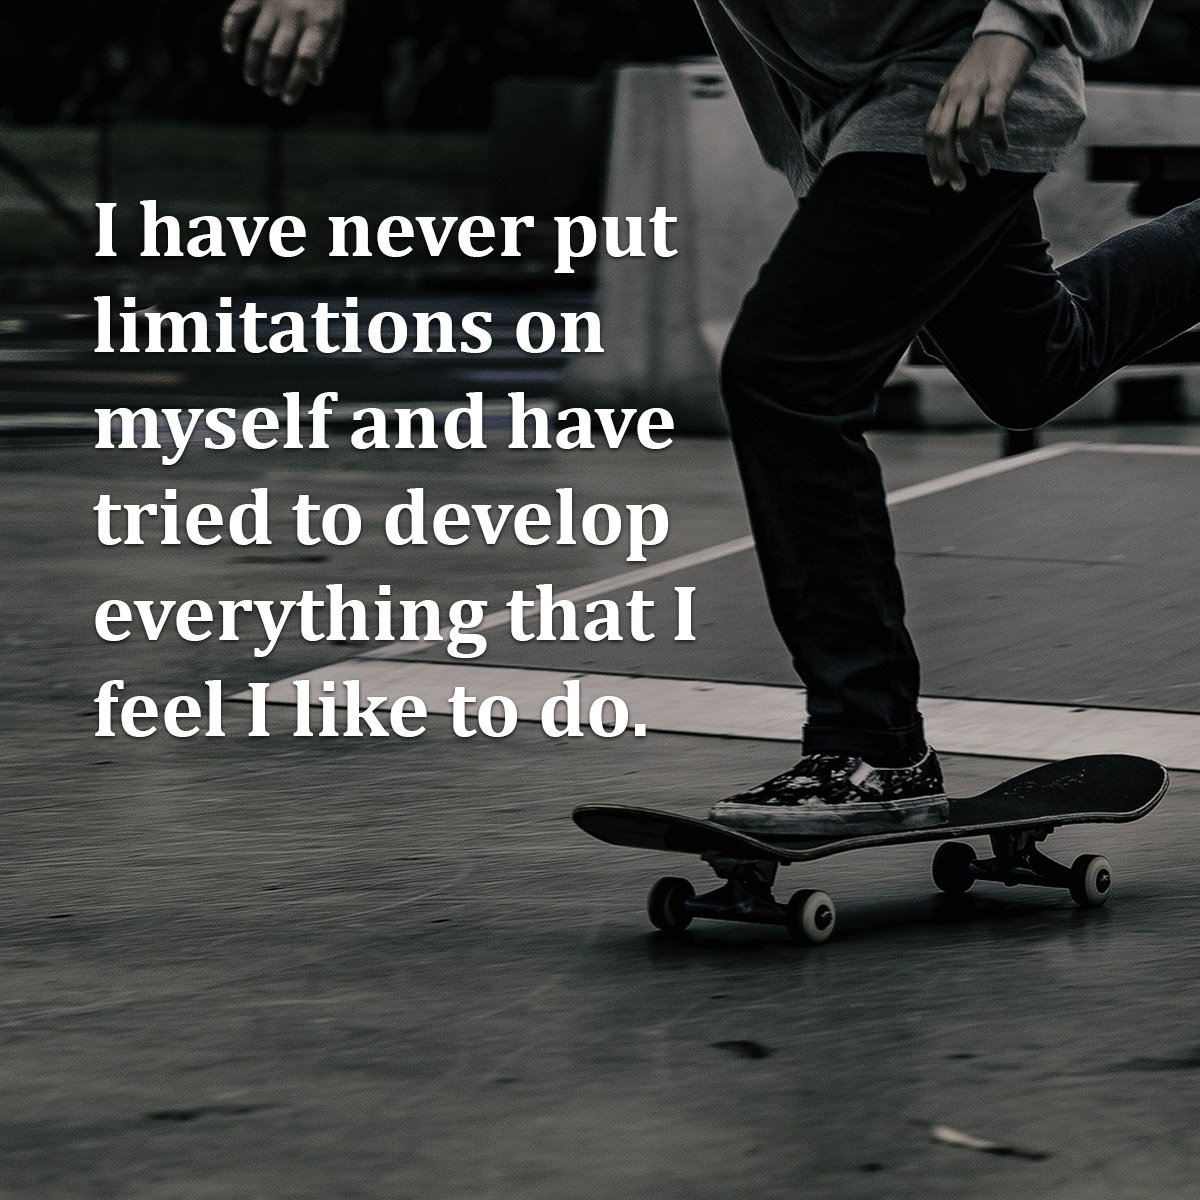 inspirational meme quotes